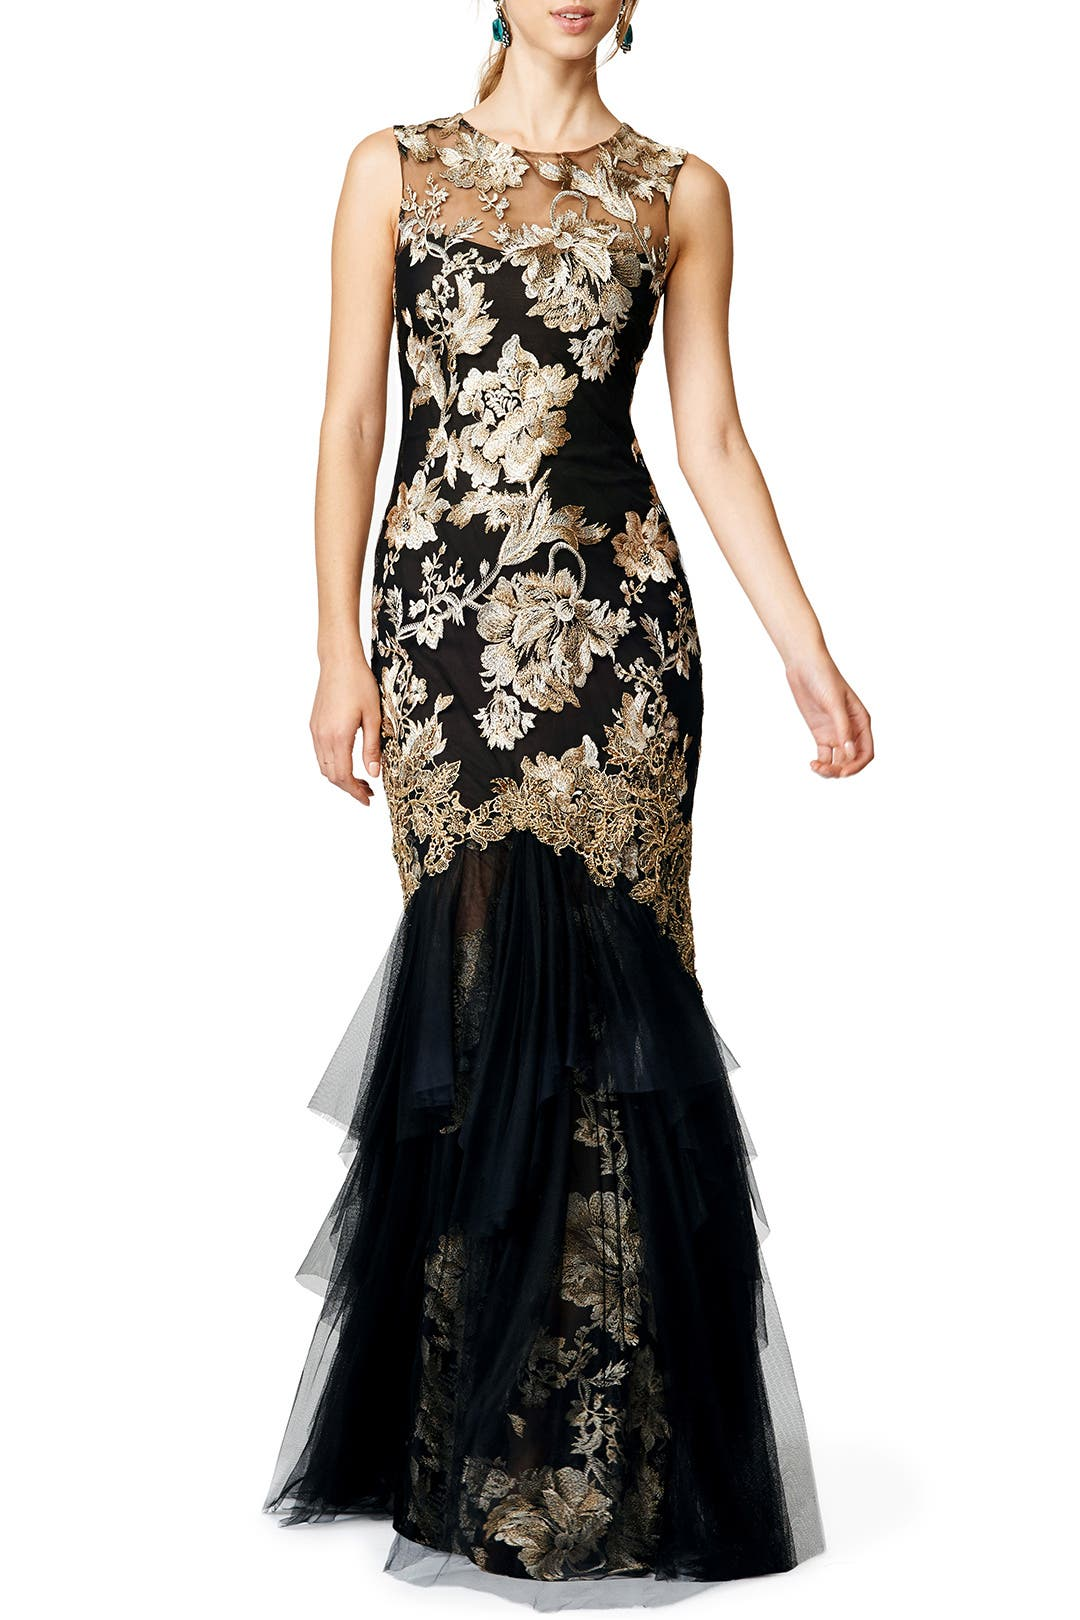 Midday Delight   Marchesa Notte Falling Roses Gown